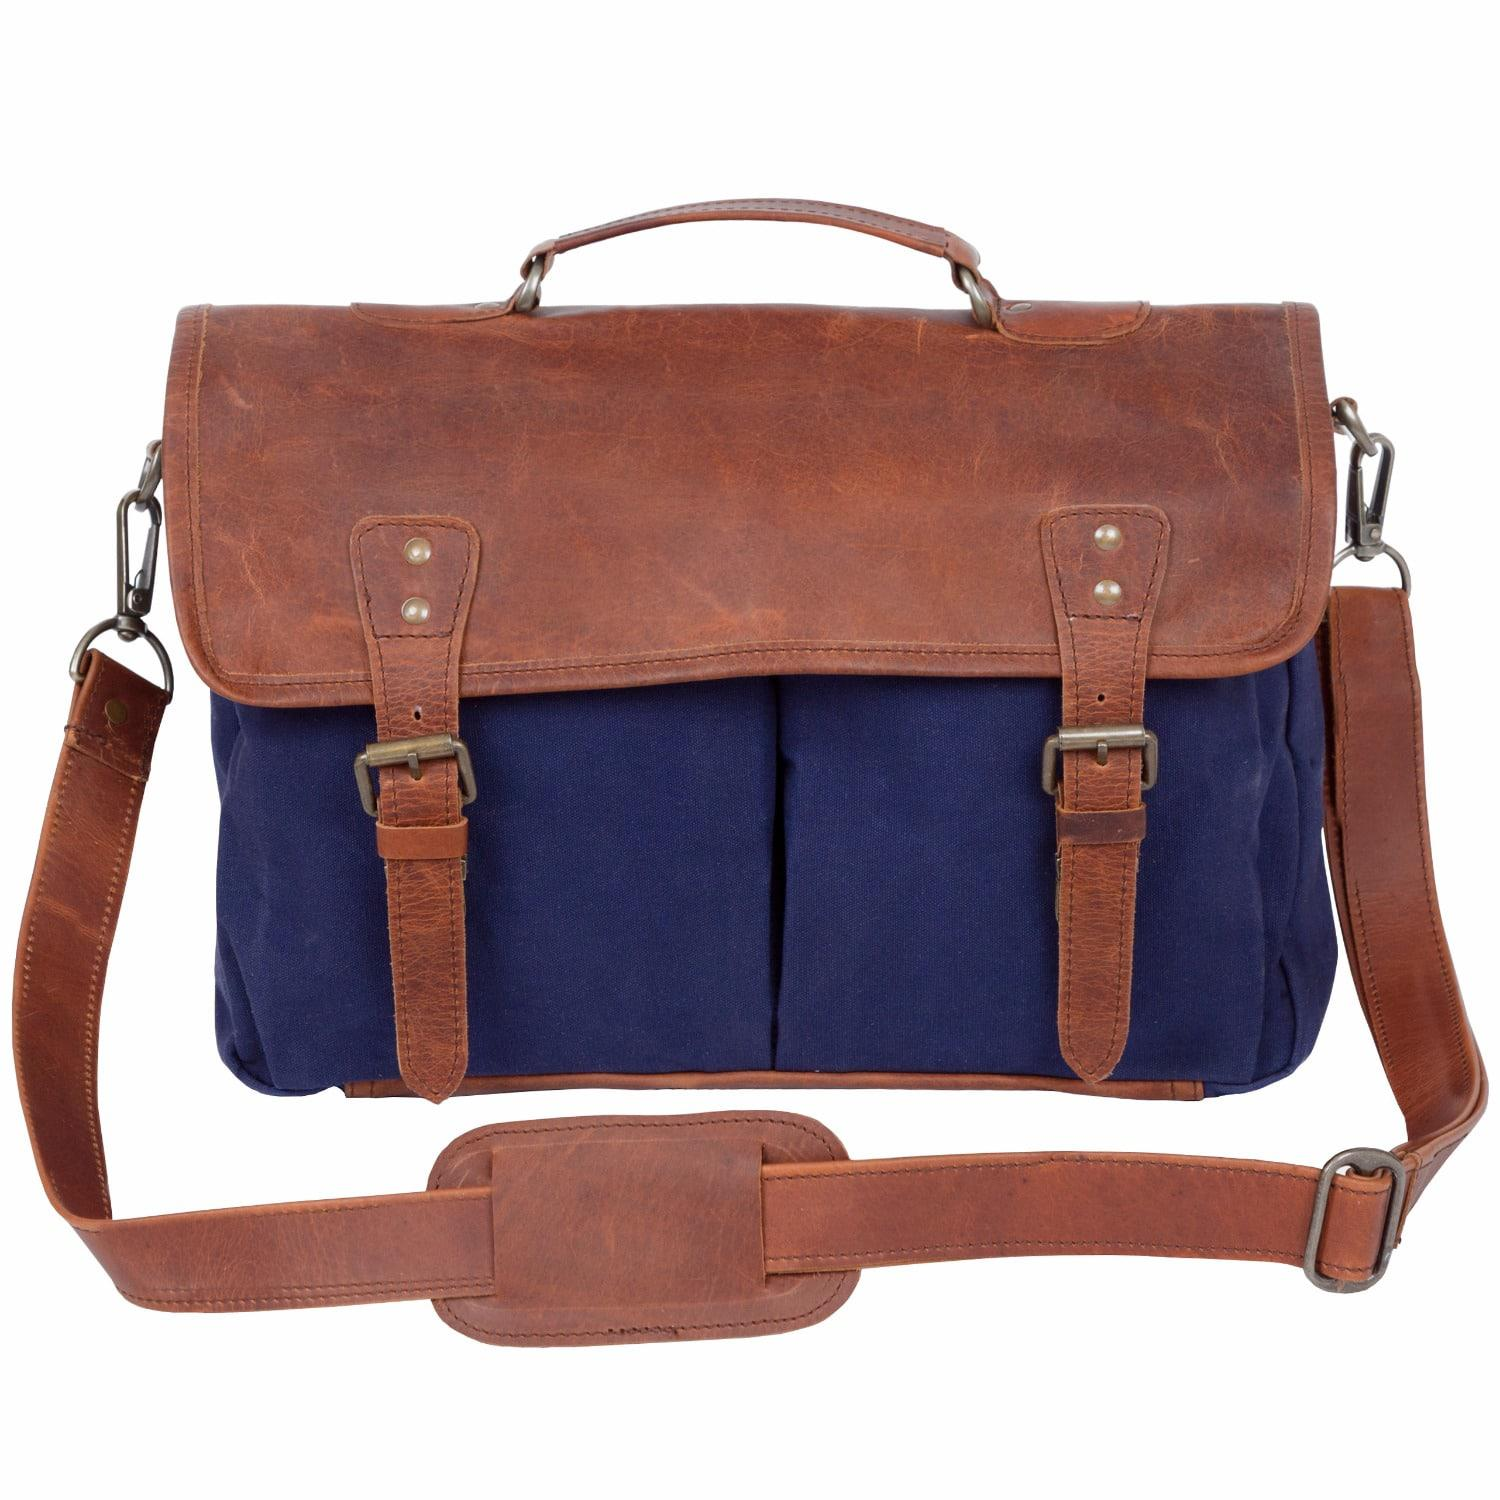 7ef7586ad773 Lyst - Mahi Leather Canvas And Leather Messenger Satchel Bag In Navy ...